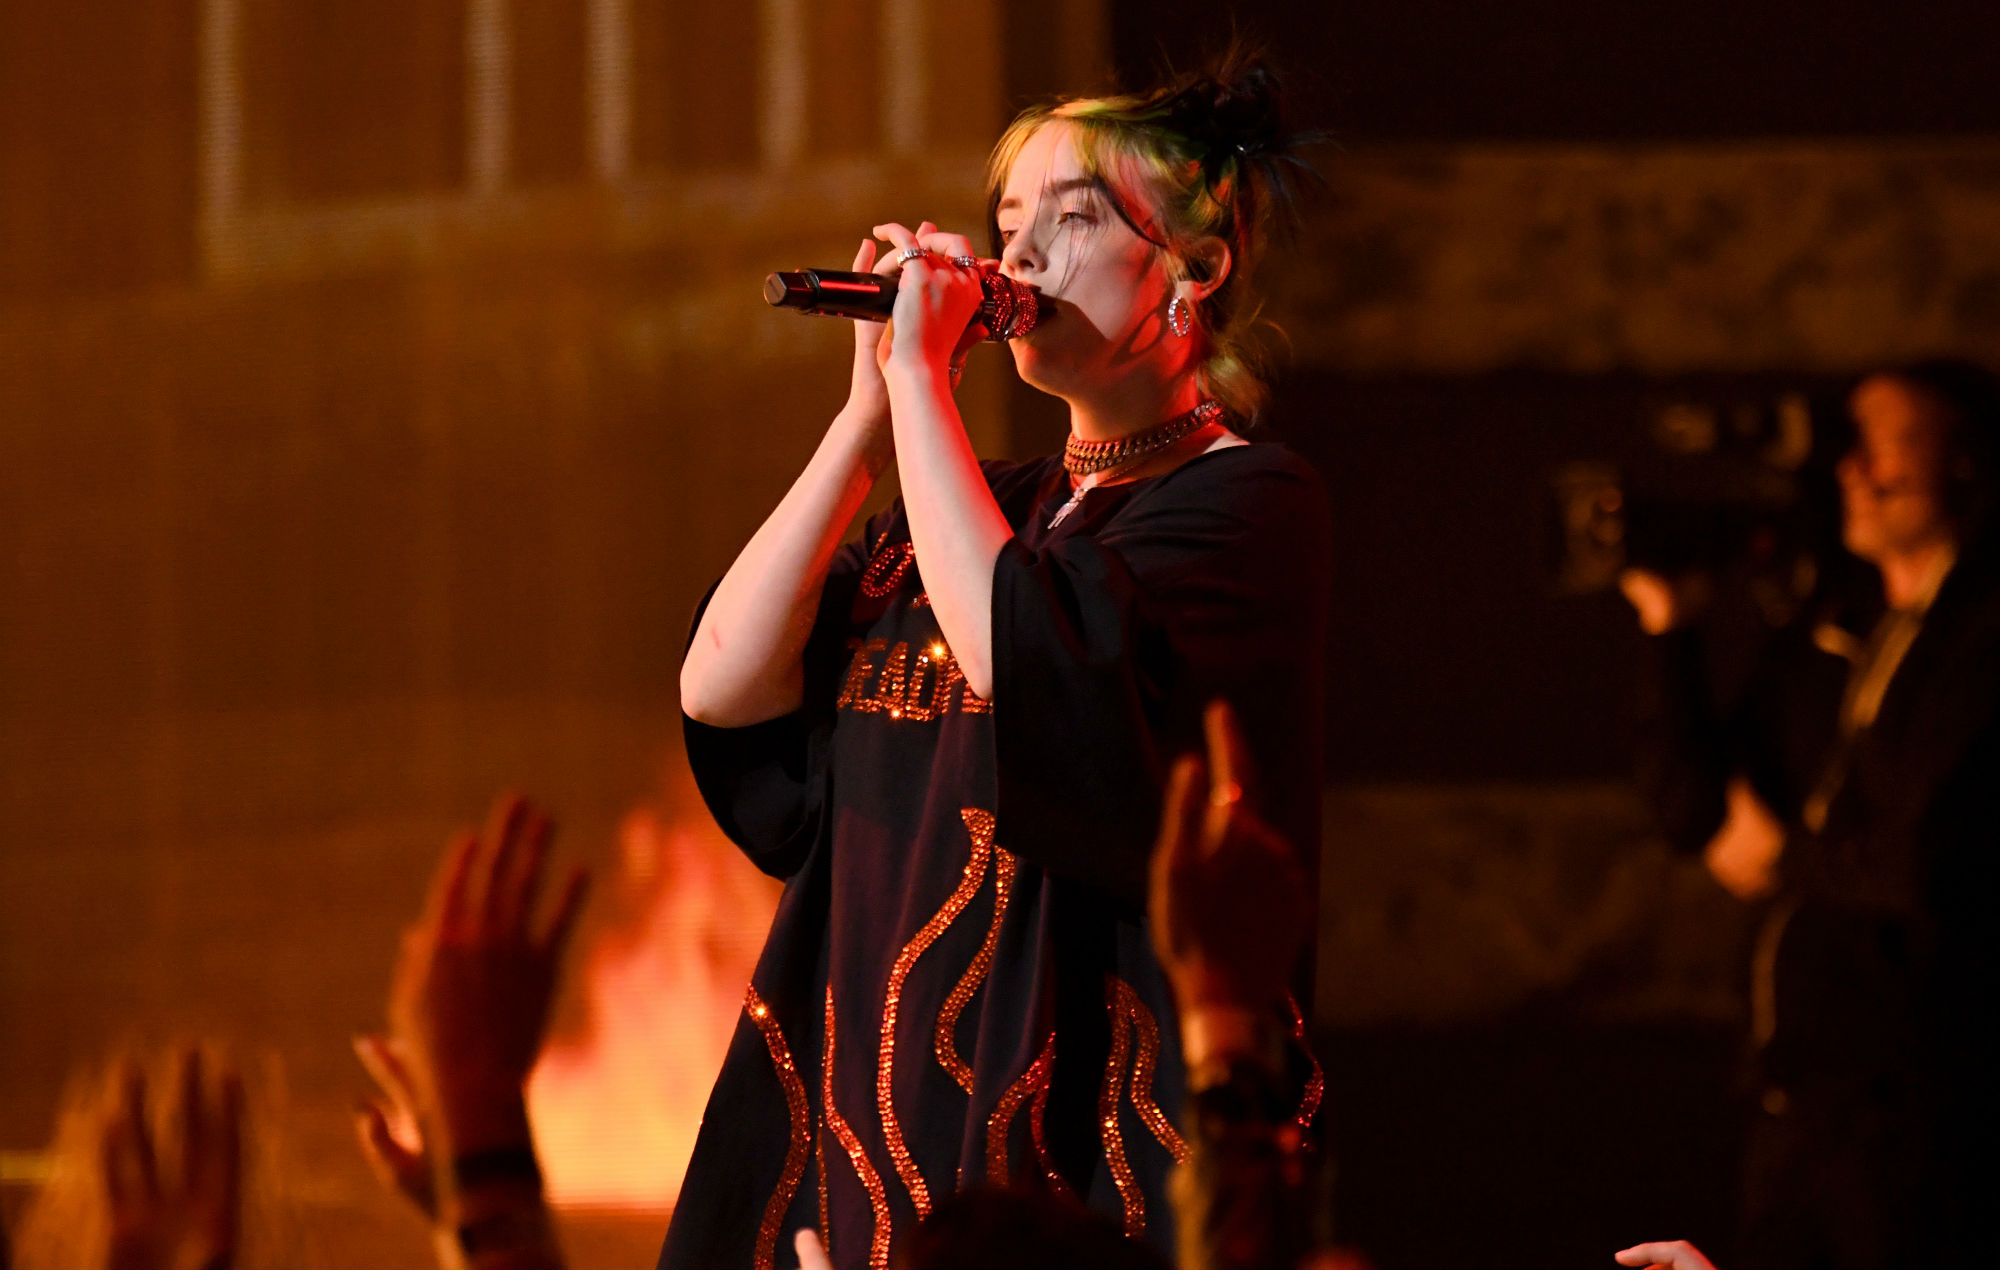 Billie Eilish has opened up about the making of her latest single